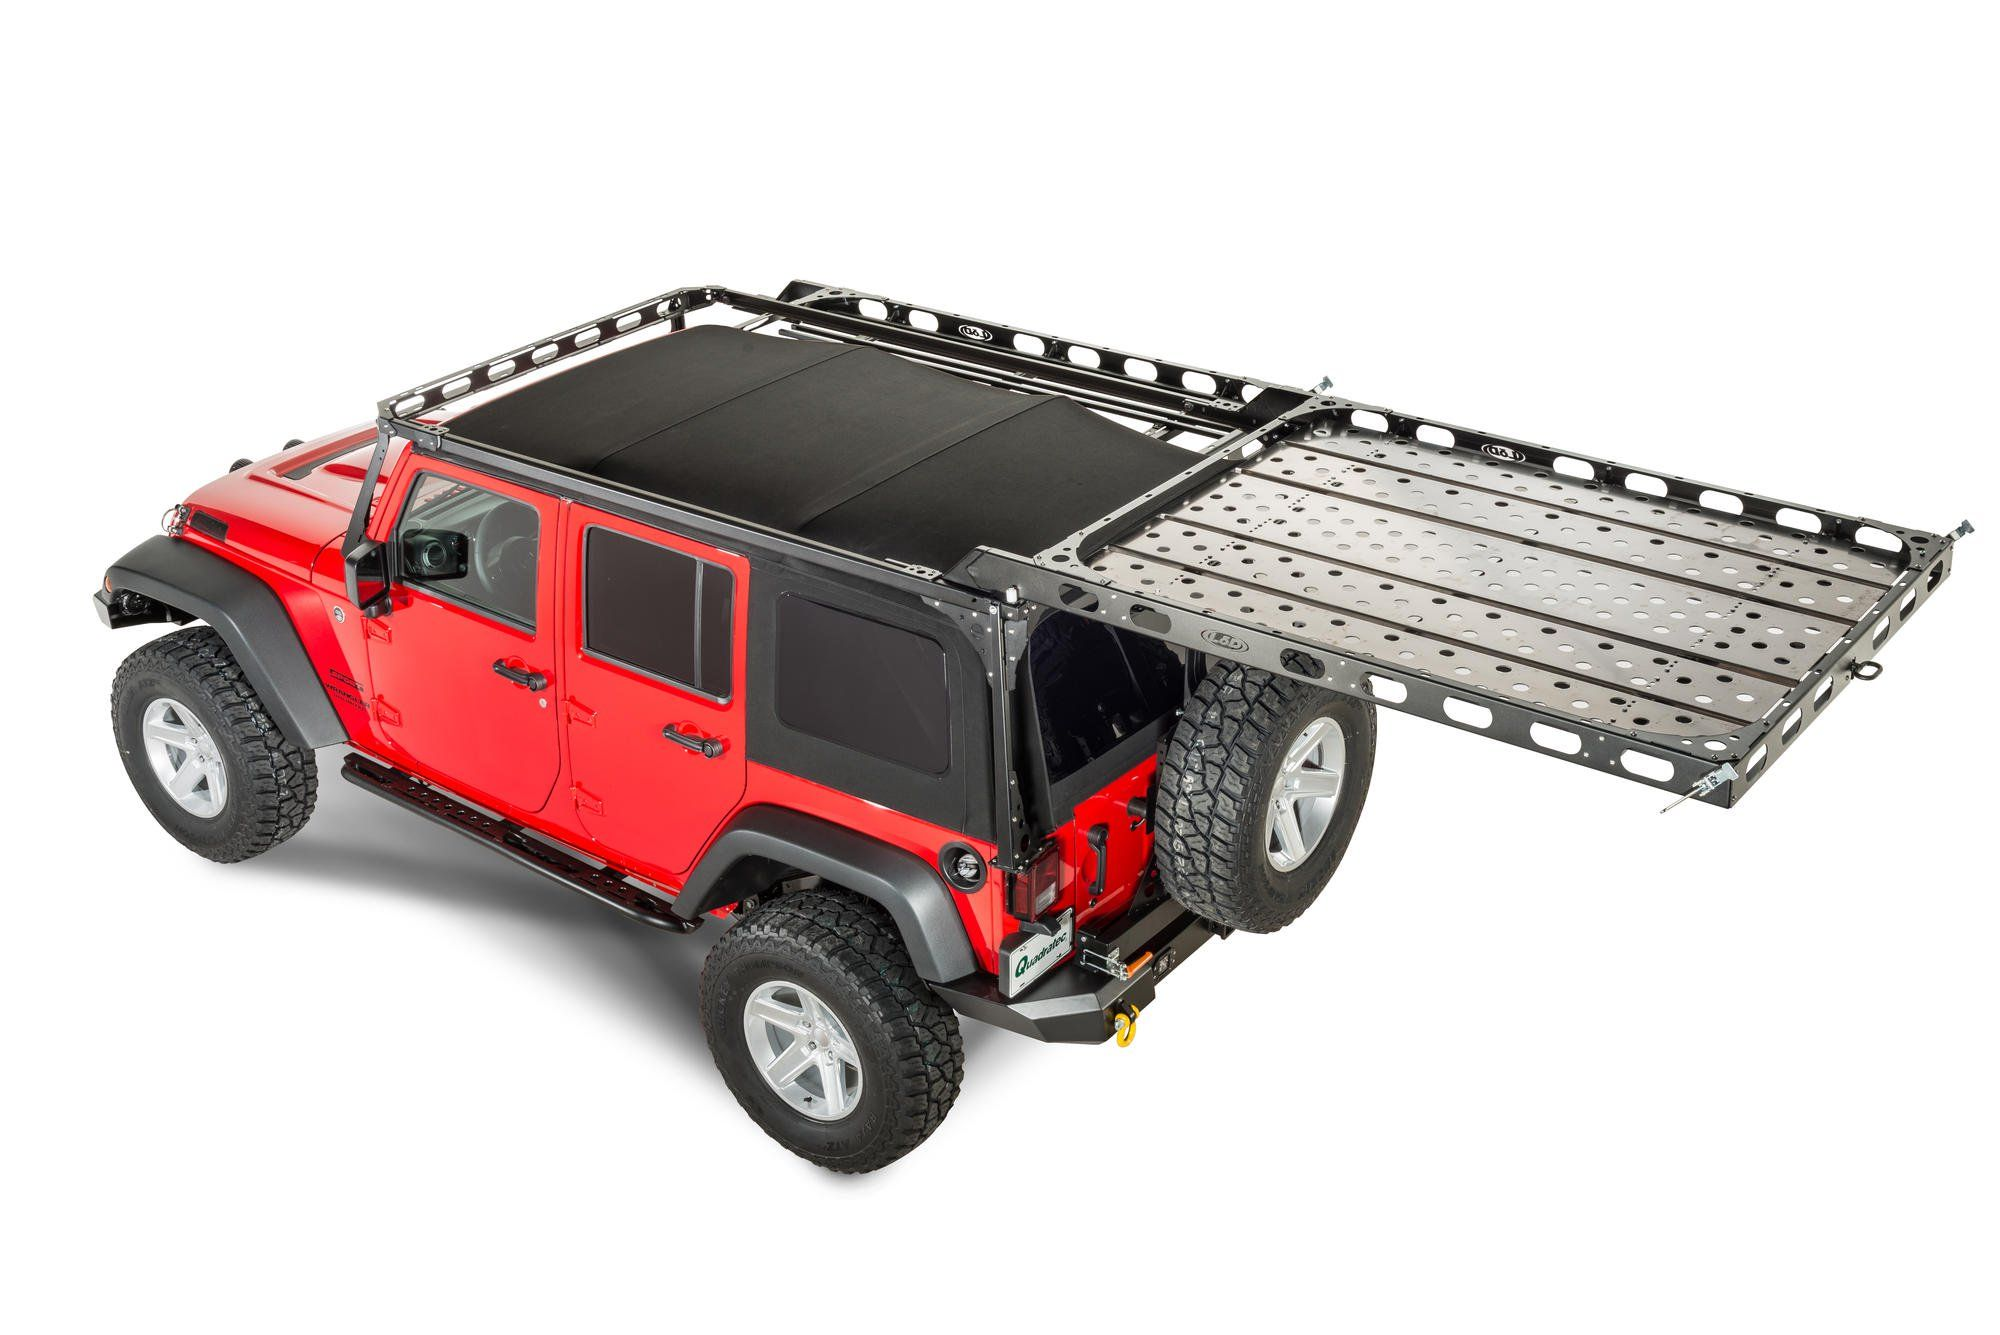 The Lod Easy Access Roof Rack Is A Patent Pending System Which Allows The User To Easily Unlatc Jeep Wrangler Unlimited Jeep Wrangler Jeep Wrangler Accessories